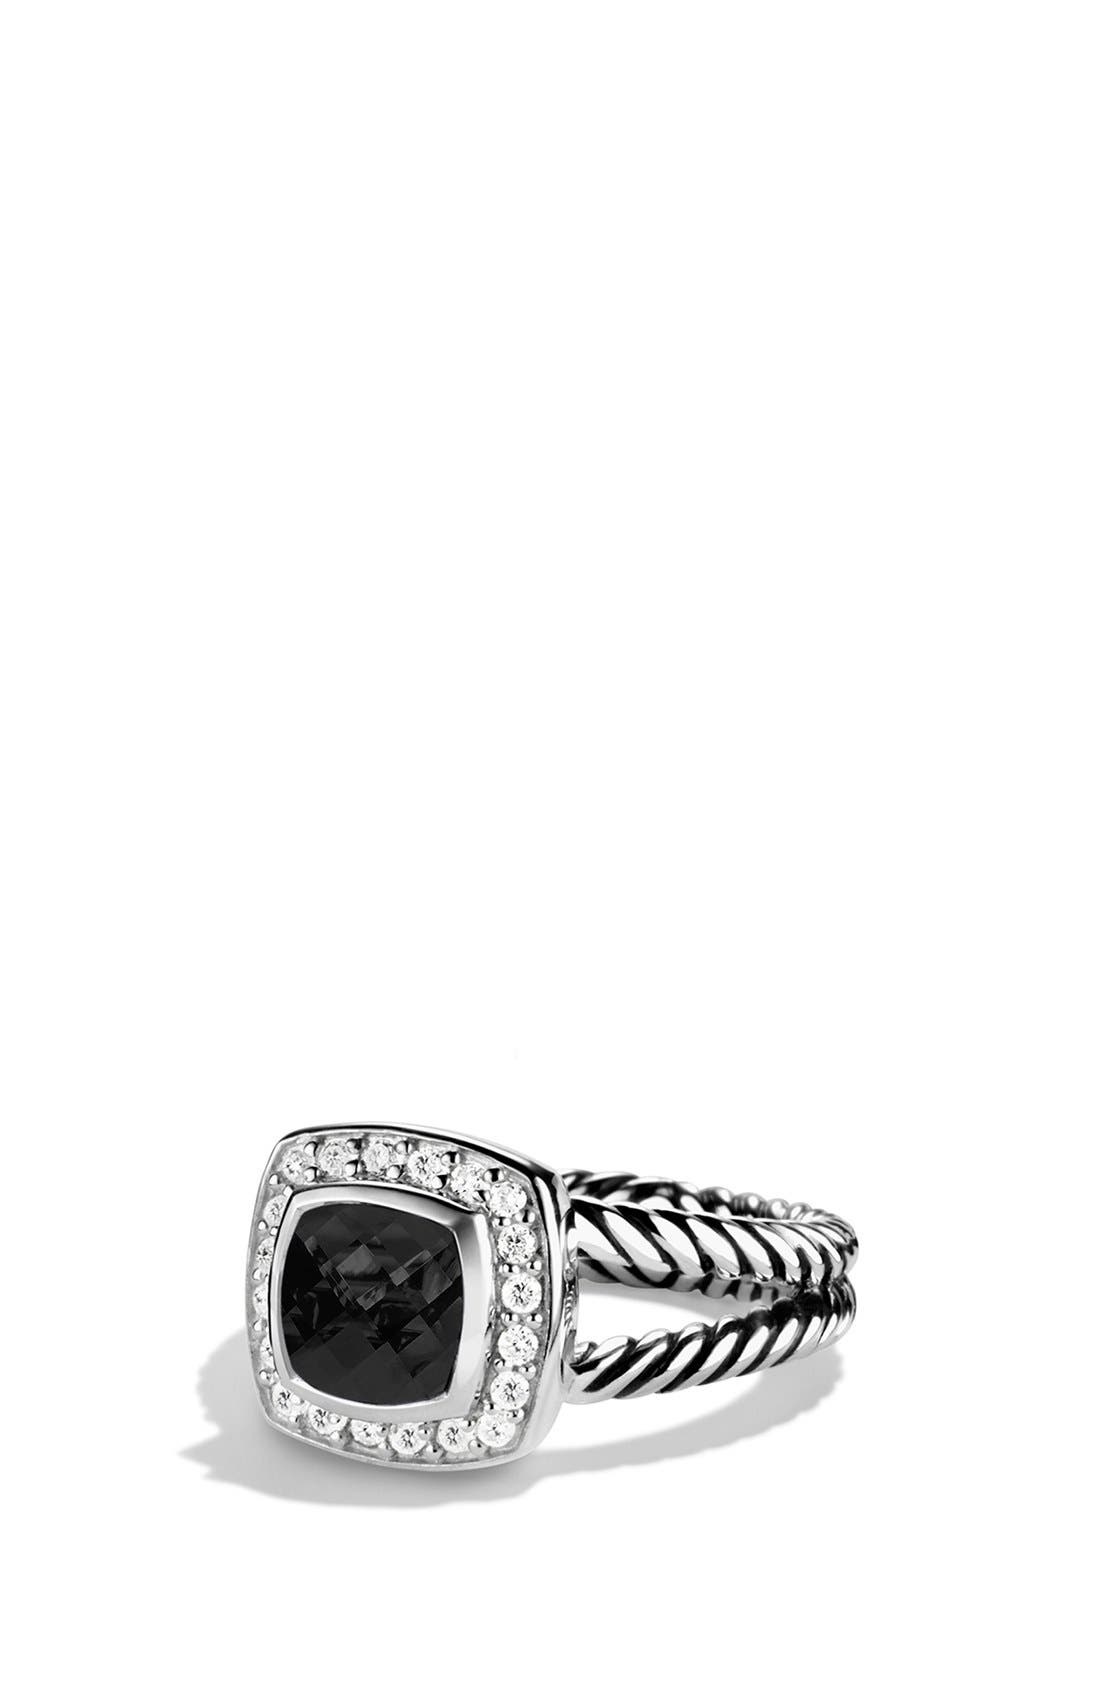 DAVID YURMAN 'Albion' Petite Ring with Semiprecious Stone & Diamonds, Main, color, BLACK ONYX